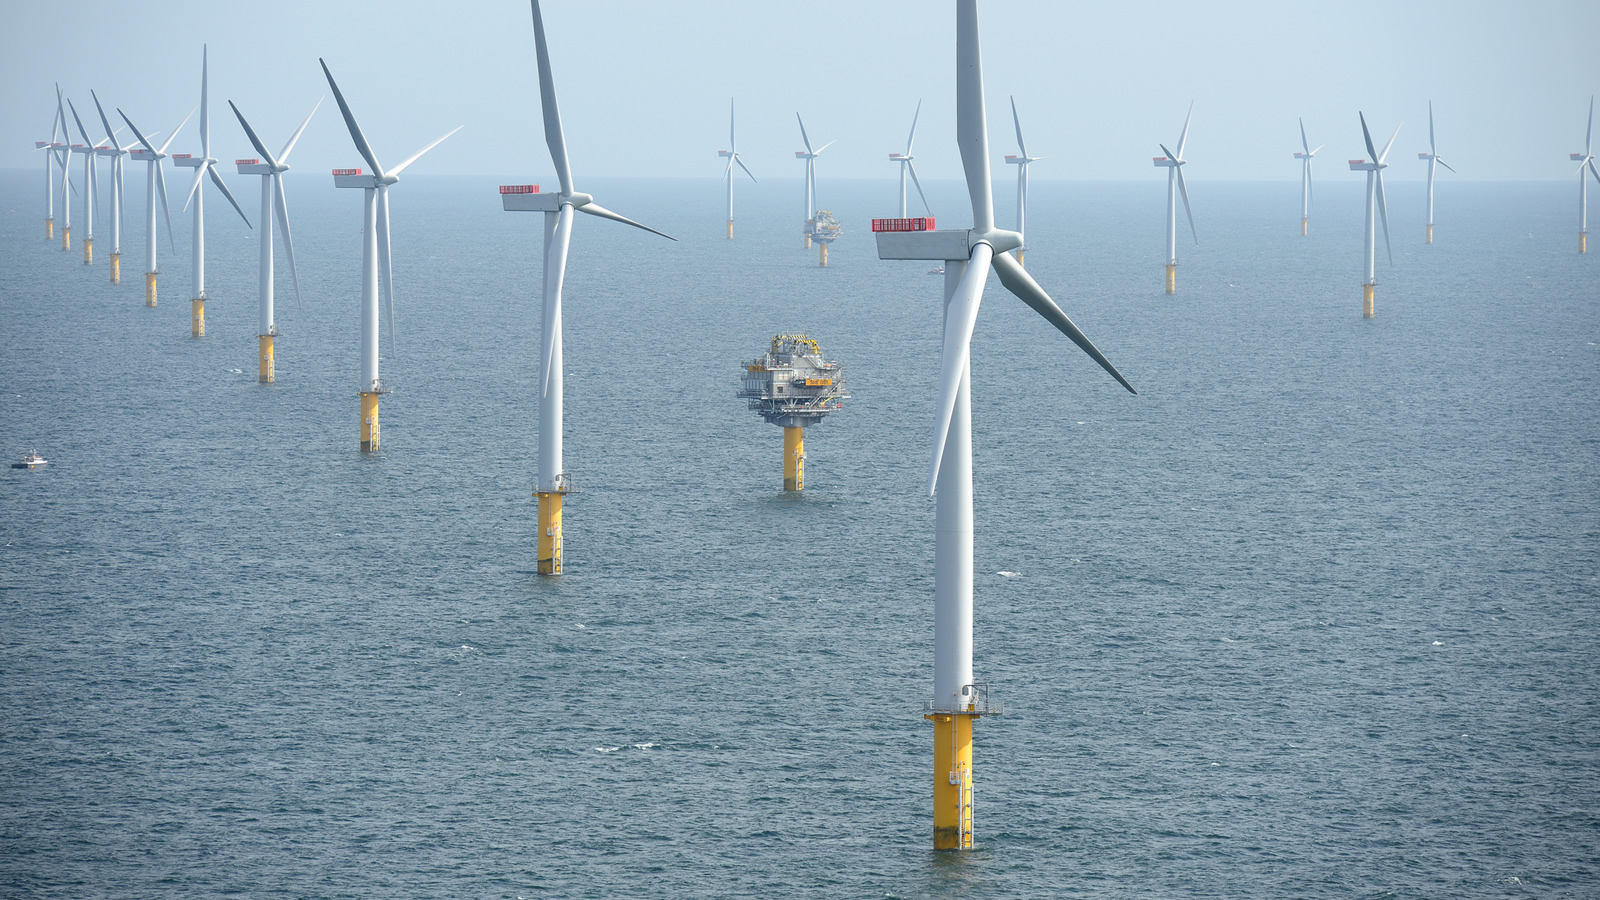 <h4>More than Enough to meet the East Coast's Energy Needs</h4><h5>Offshore wind power could provide twice the amount of energy needed to power the Atlantic coast states (including heat and cars).</h5><em>Sherringham Shoal Wind Farm, England / Harald Pettersen/Statoil CC BY 2.0</em>